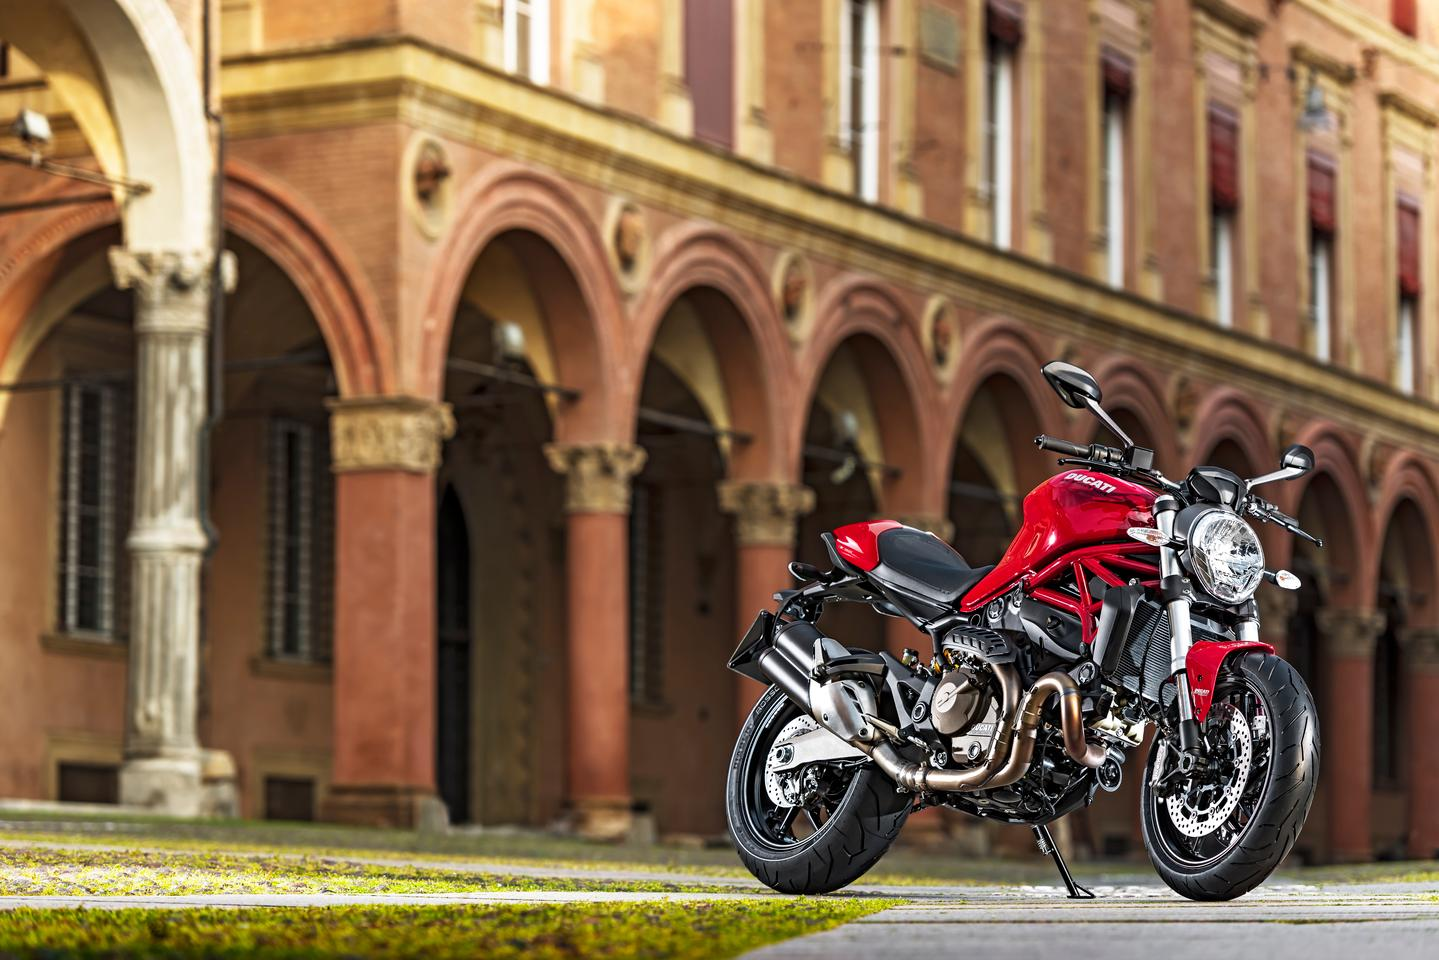 Ducati's gorgeous Monster 821 looks set to displace the last of the air-cooled Monsters from the lineup.